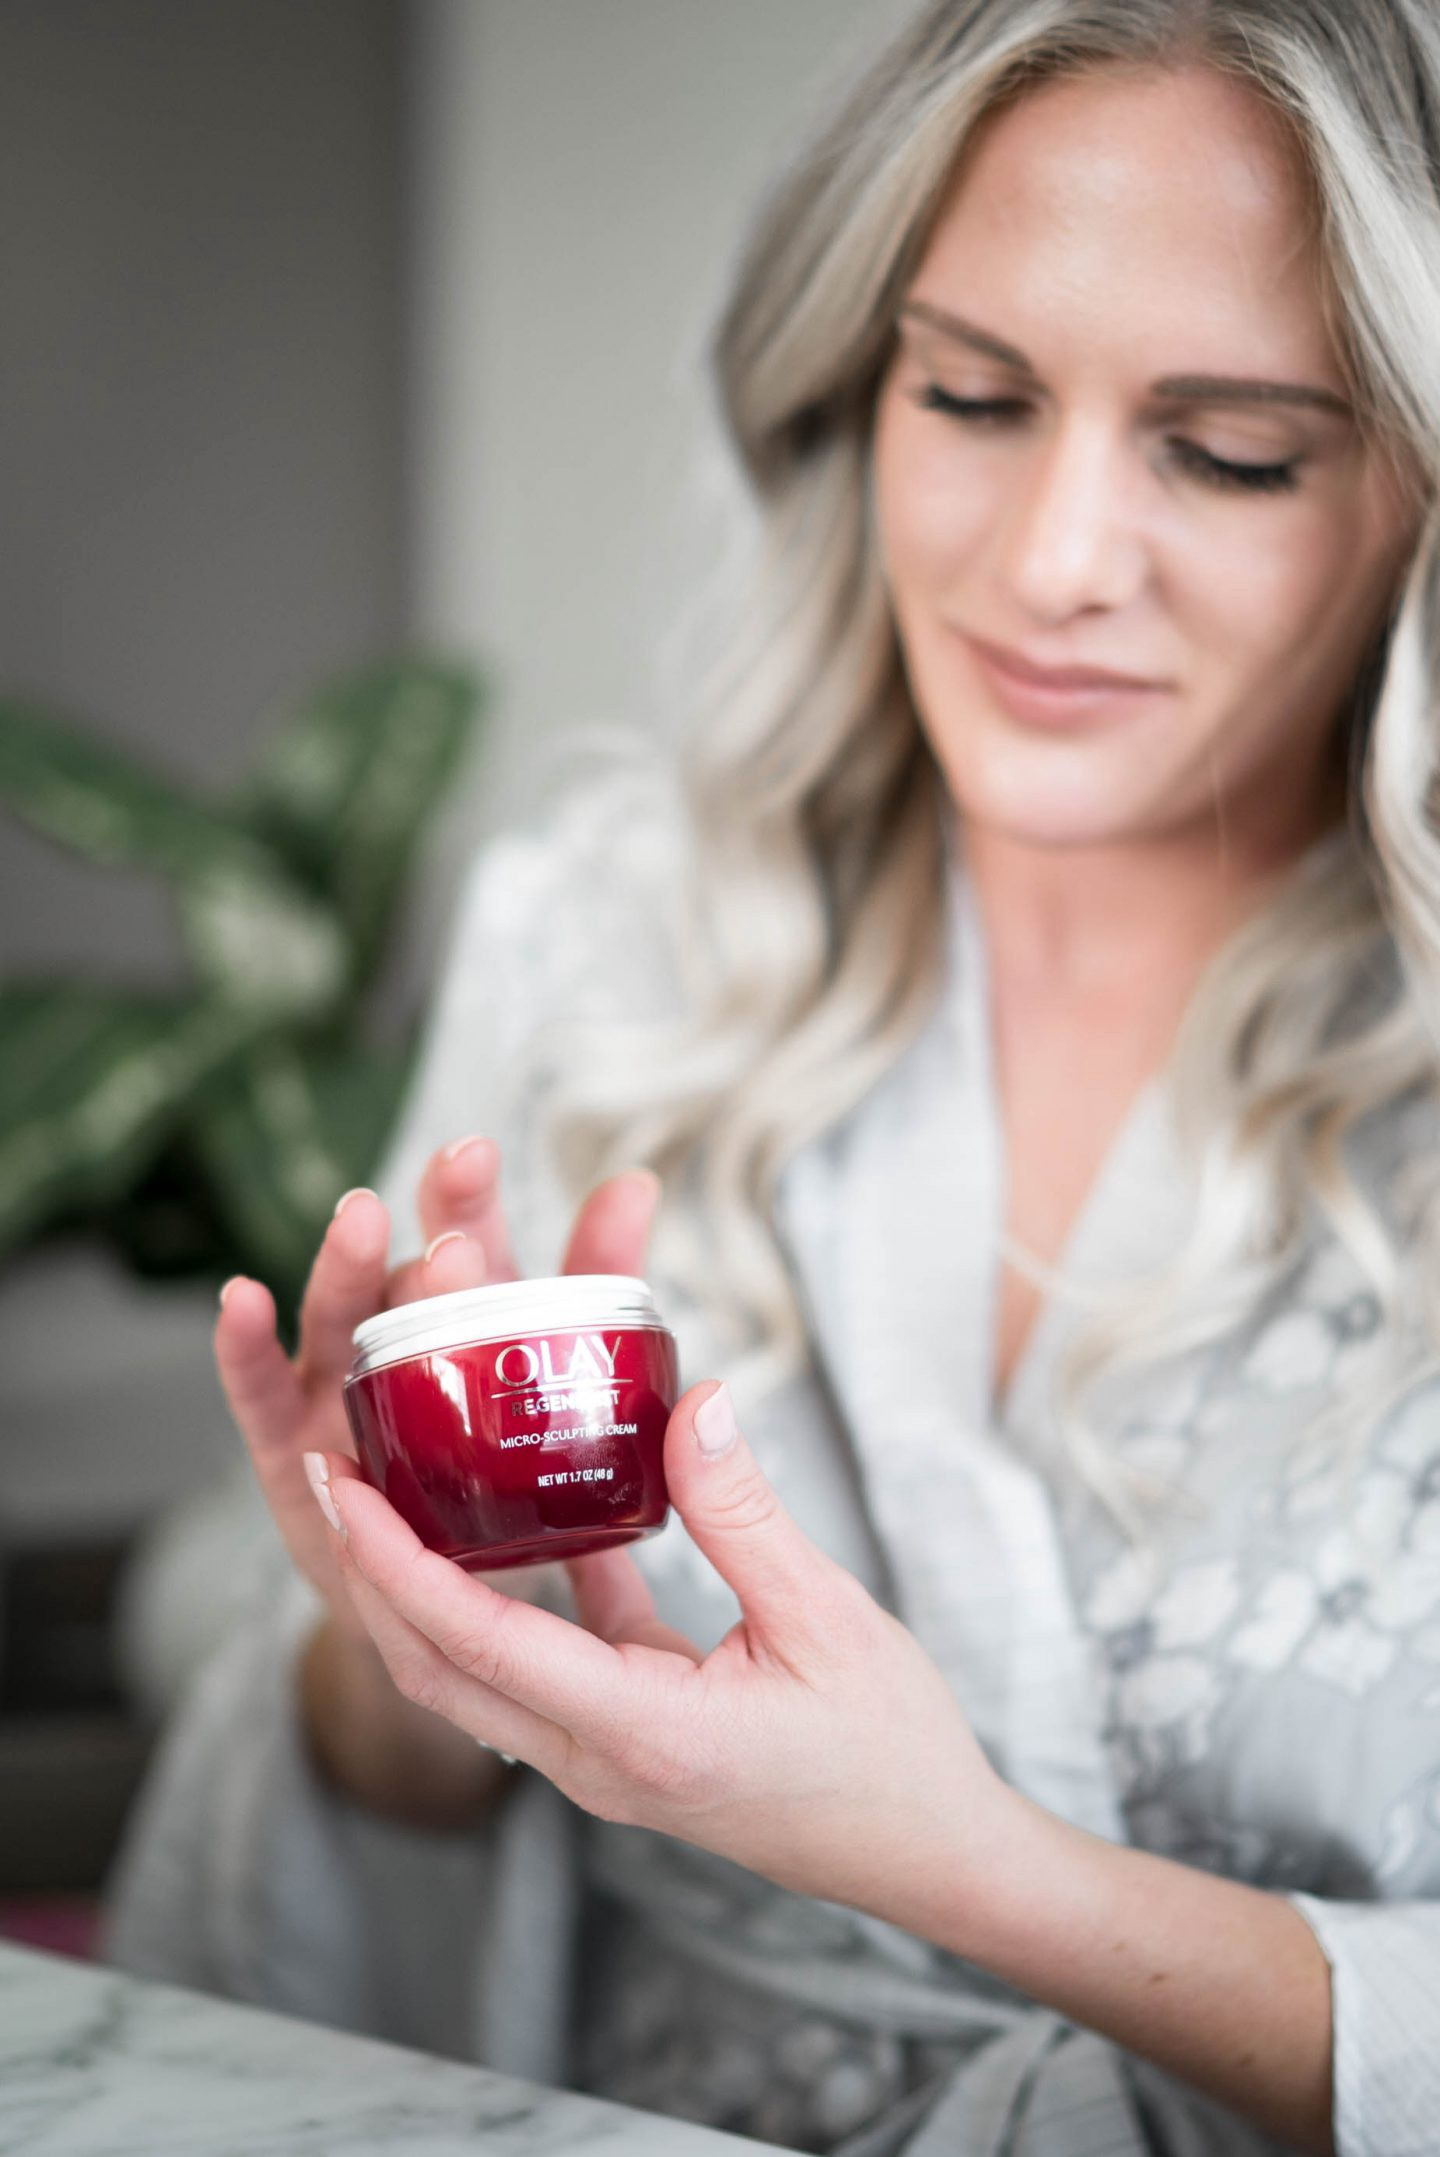 Olay 28 Day Challenge featured by popular Orange County beauty blogger, Dress Me Blonde